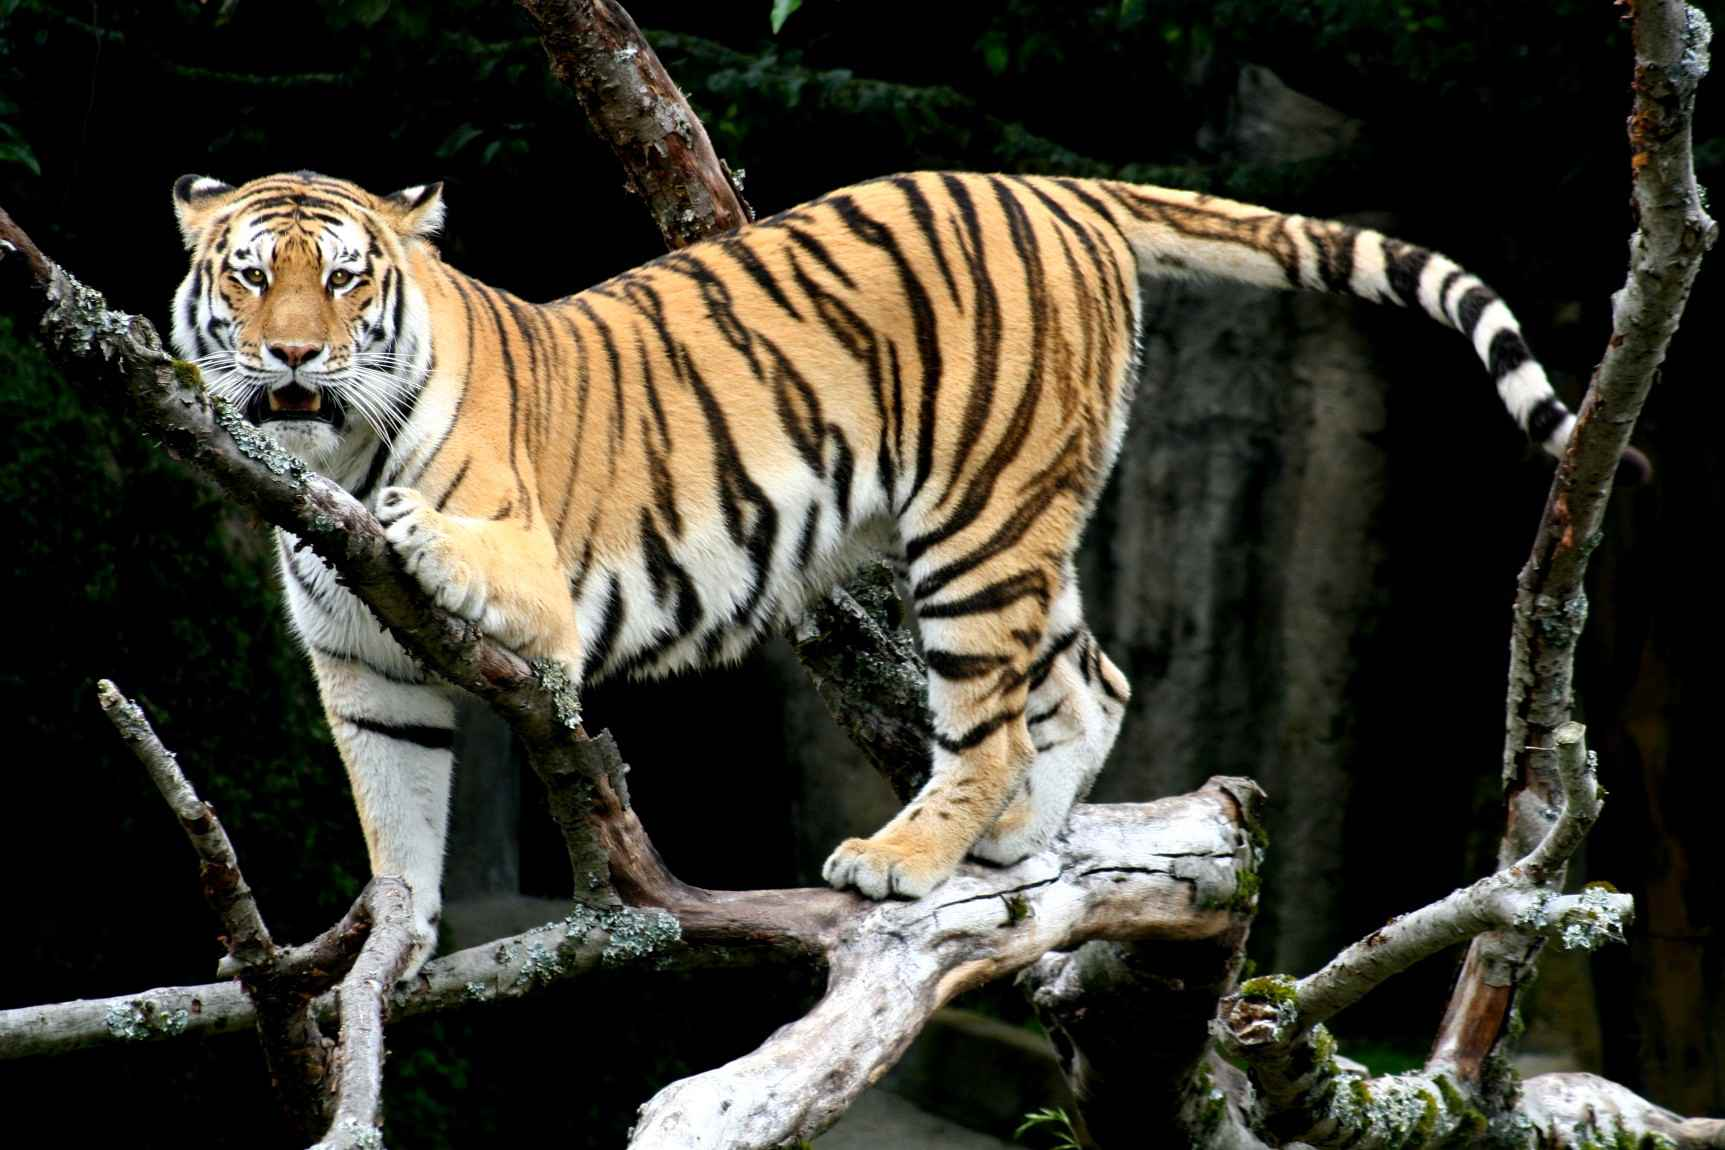 A siberian tiger gracefully steps through tree branches